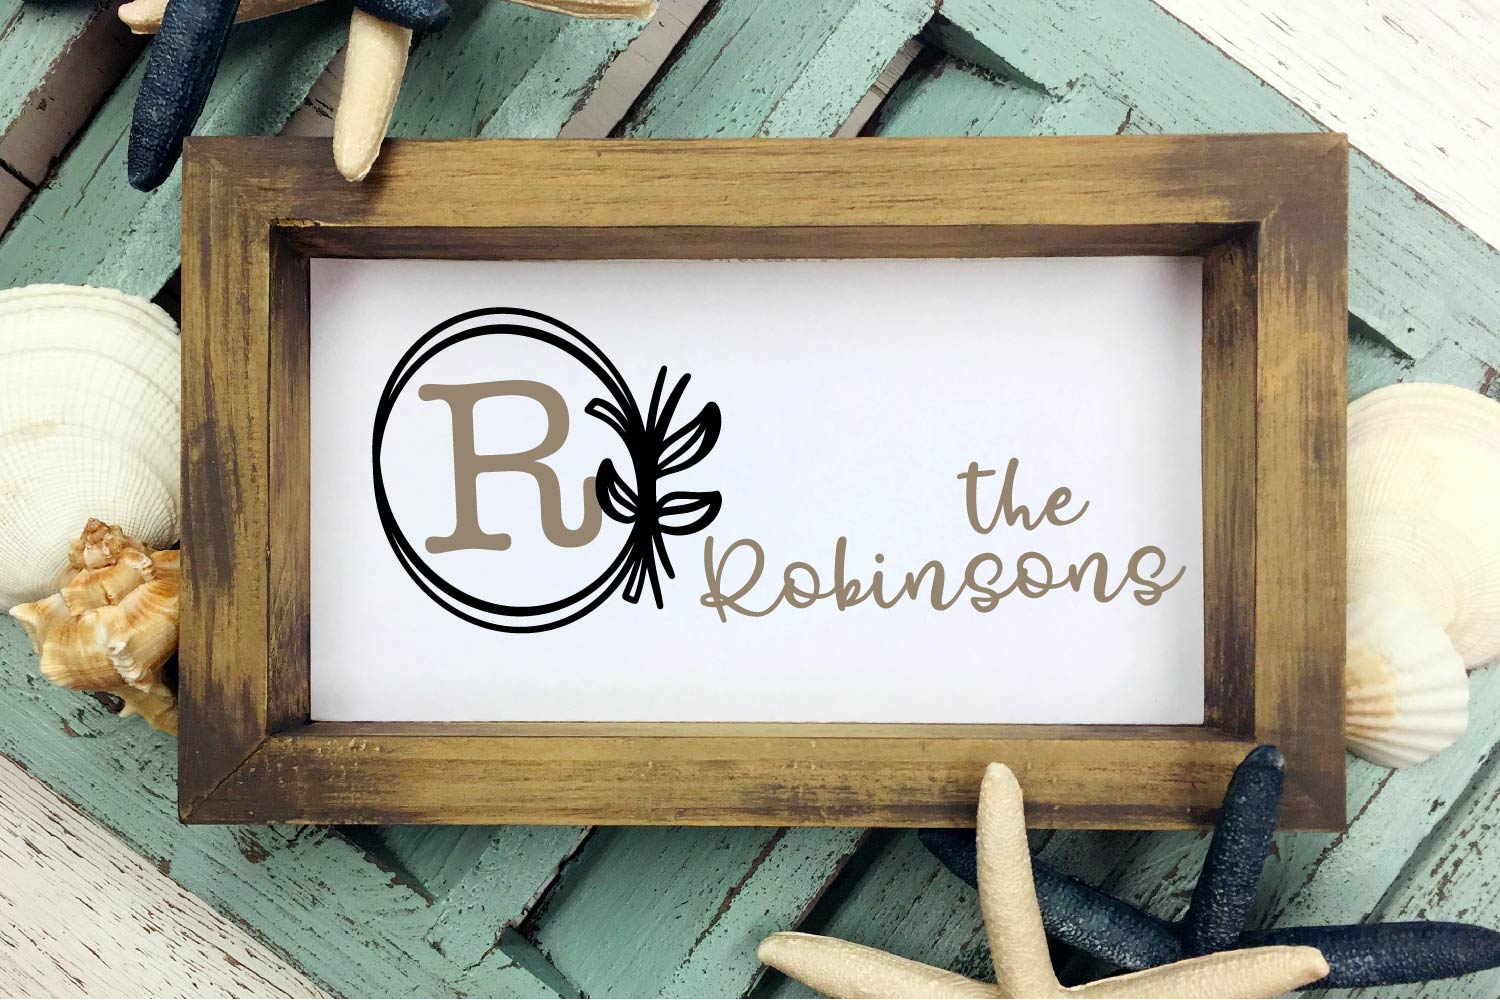 Sign Doodles - A Dingbat Font - Great For Farmhouse Signs! example image 2